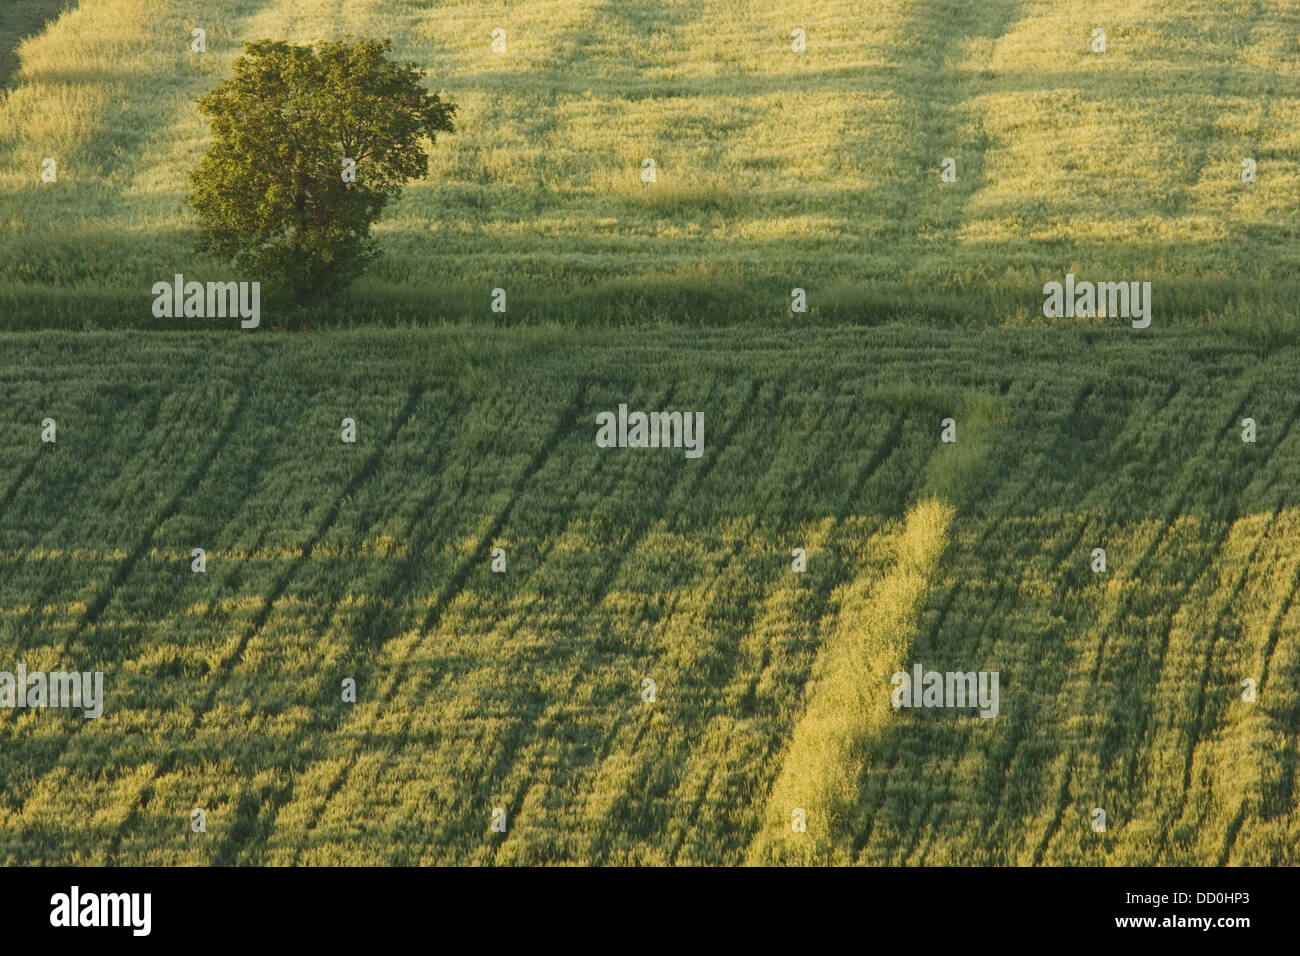 Lone tree in mowed wheat field, aerial view, early morning sunlight - Stock Image